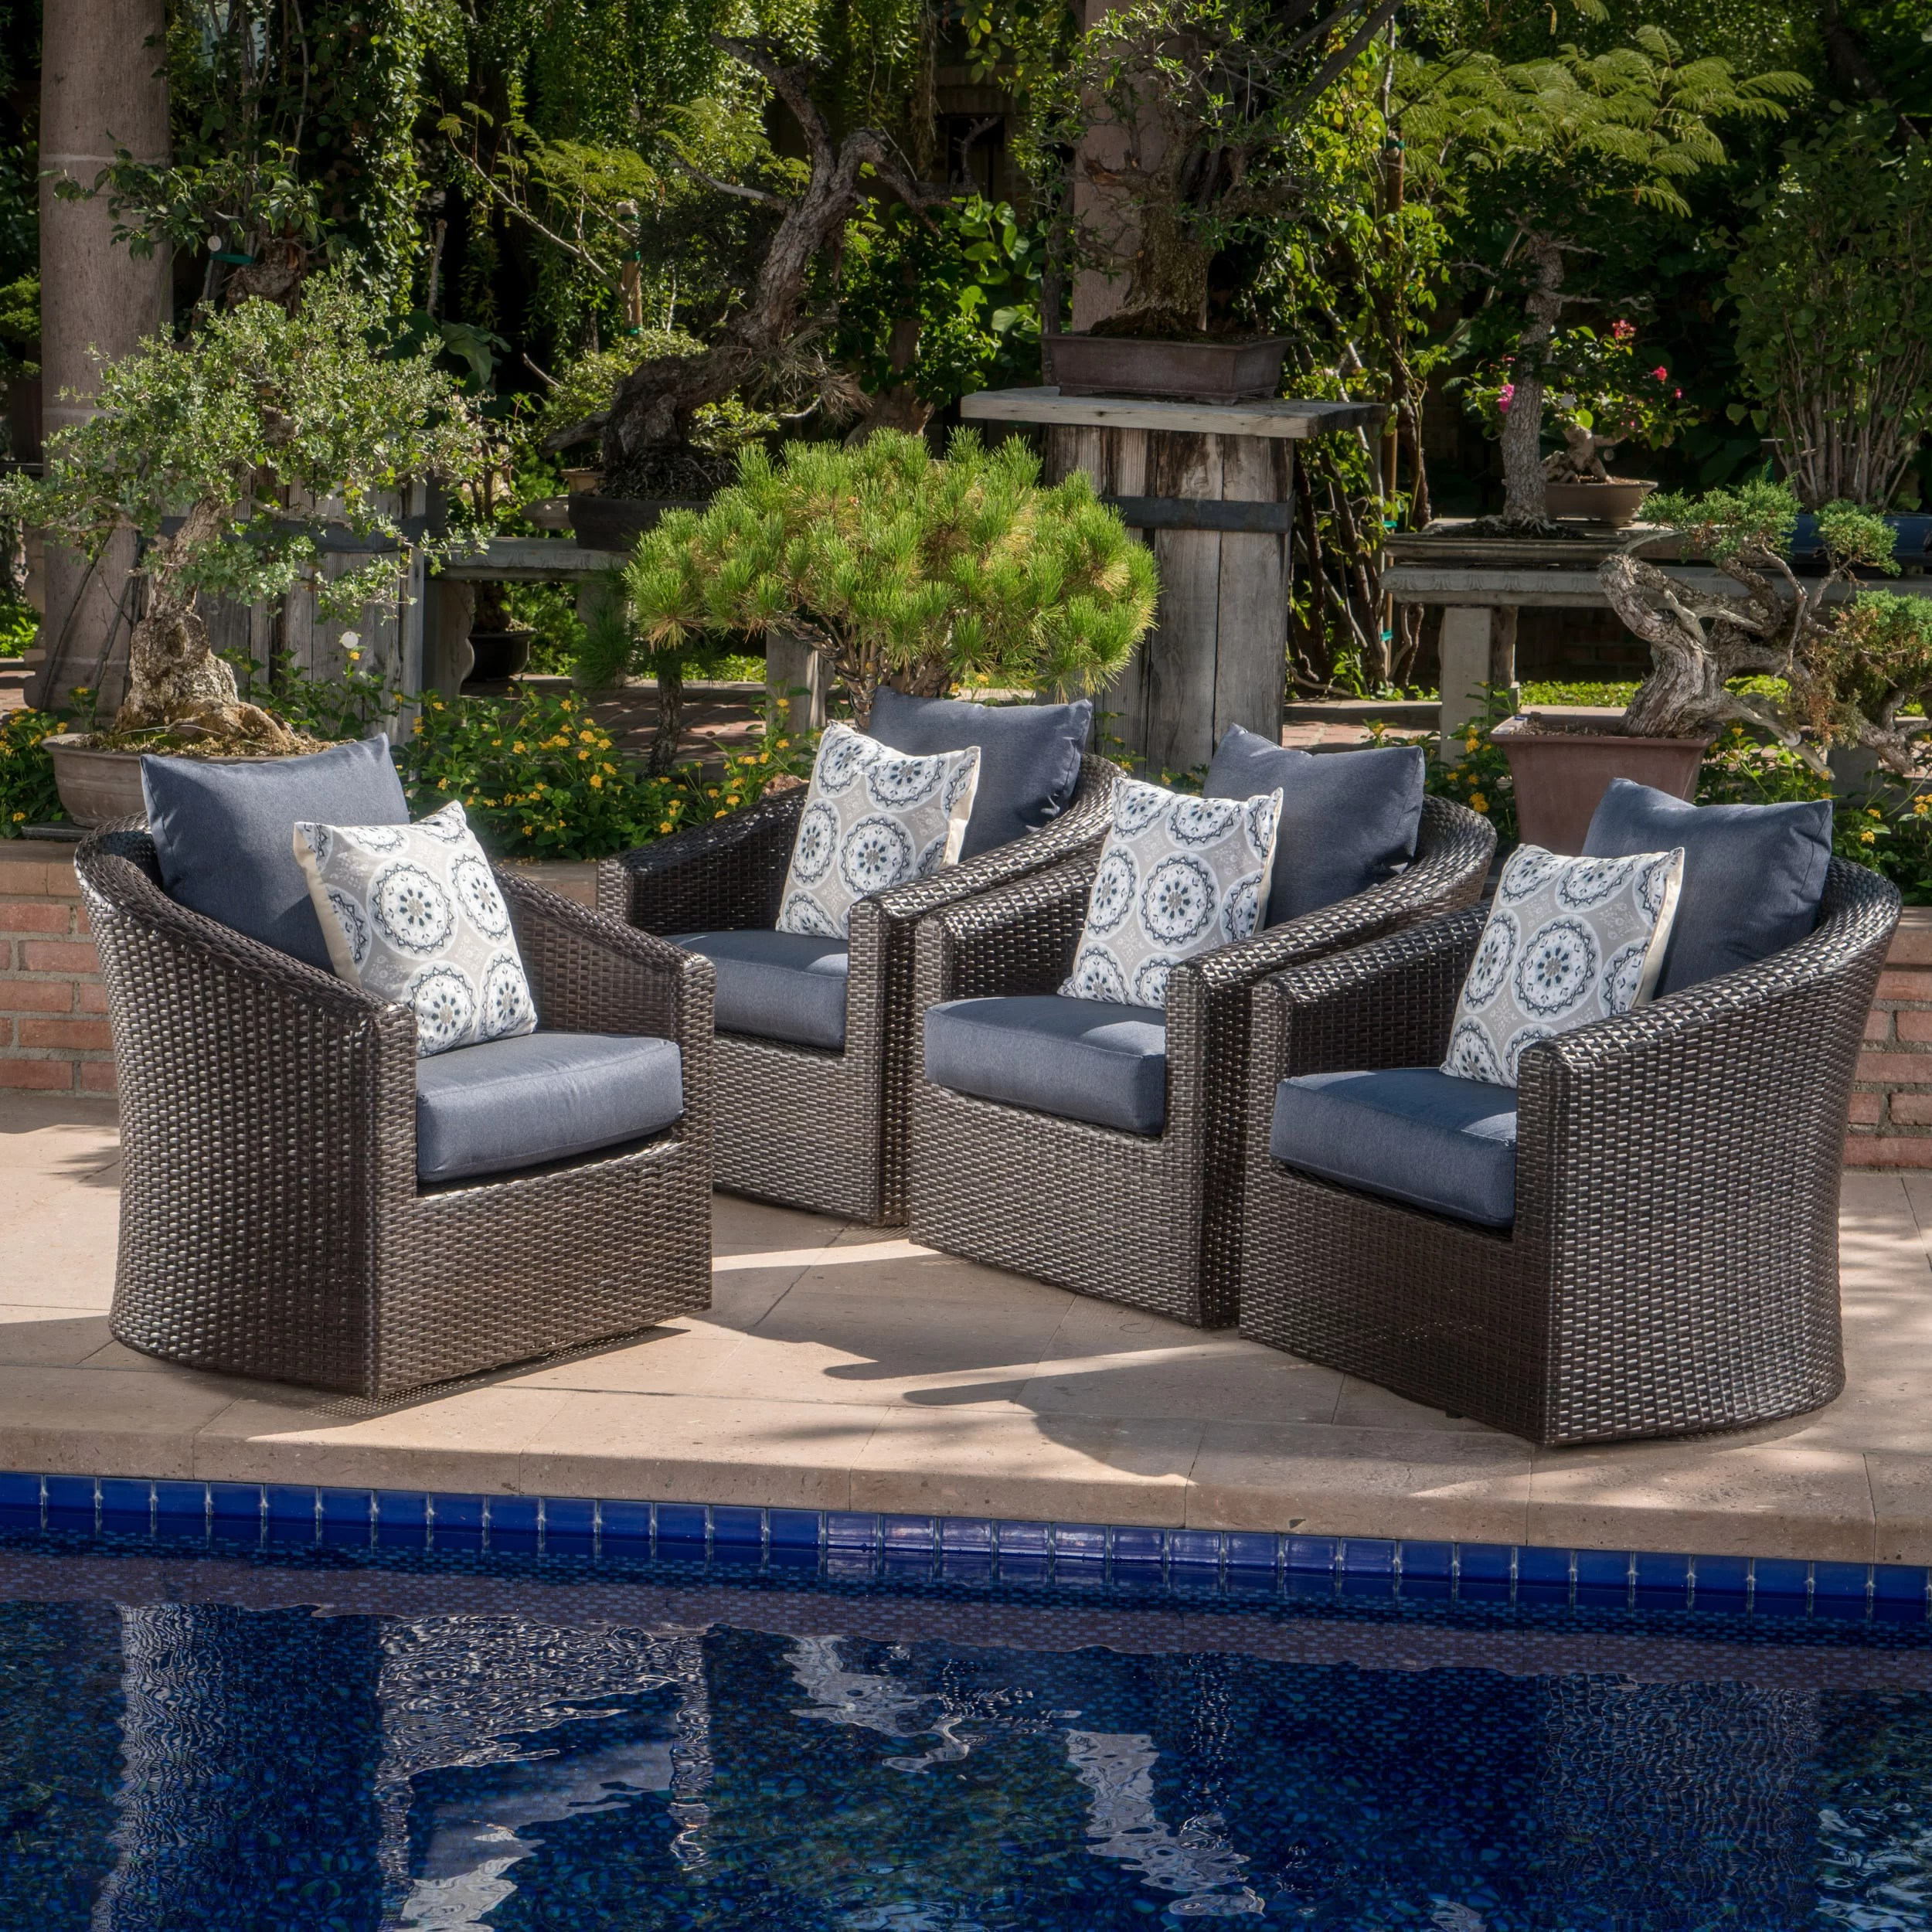 Outdoor Chair Set Dierdre Modern Outdoor Wicker Swivel Club Patio Chair With Cushions